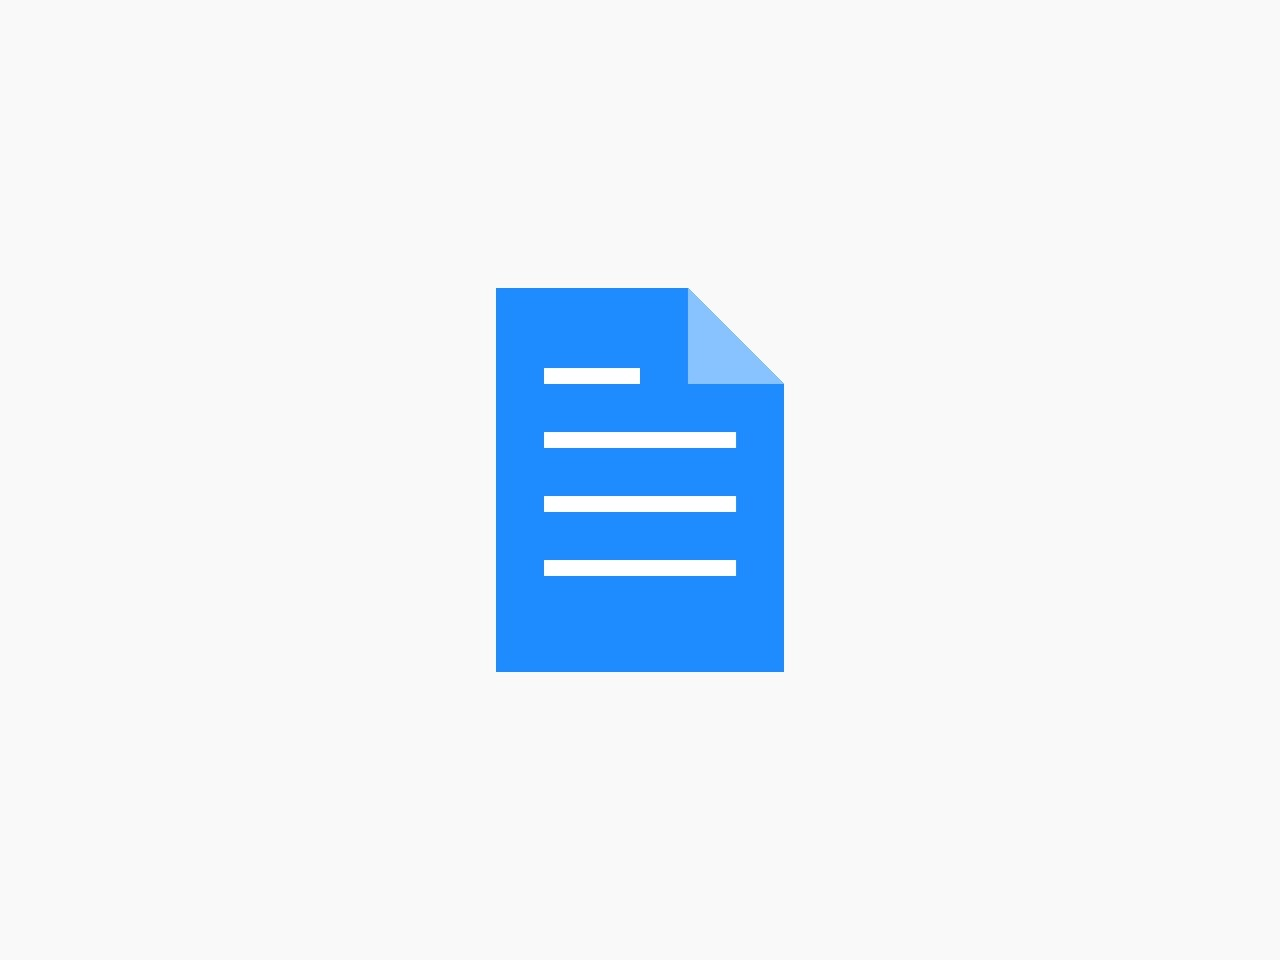 http://www.1stwebdesigner.com/resources/free-3-column-wordpress-themes/?utm_source=feedburner&utm_medium=feed&utm_campaign=Feed:+1stwebdesigner+(1stwebdesigner)#more-3529